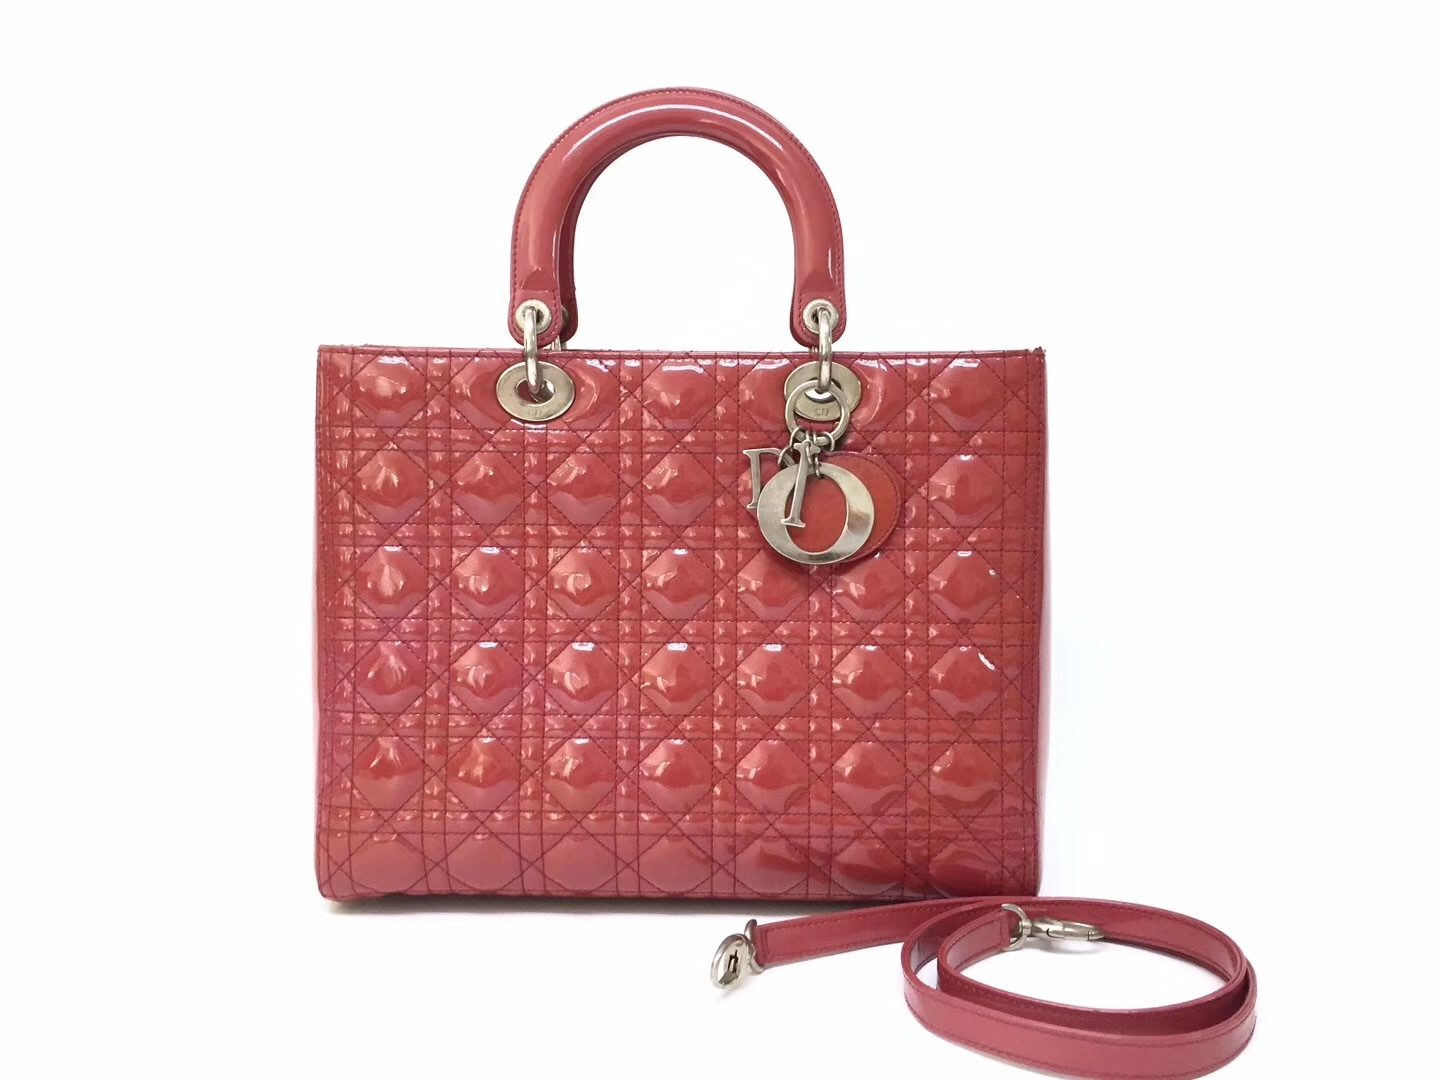 Primary image for Authentic Christian Dior Lady Dior Large Red Patent Shoulder Tote Bag GHW